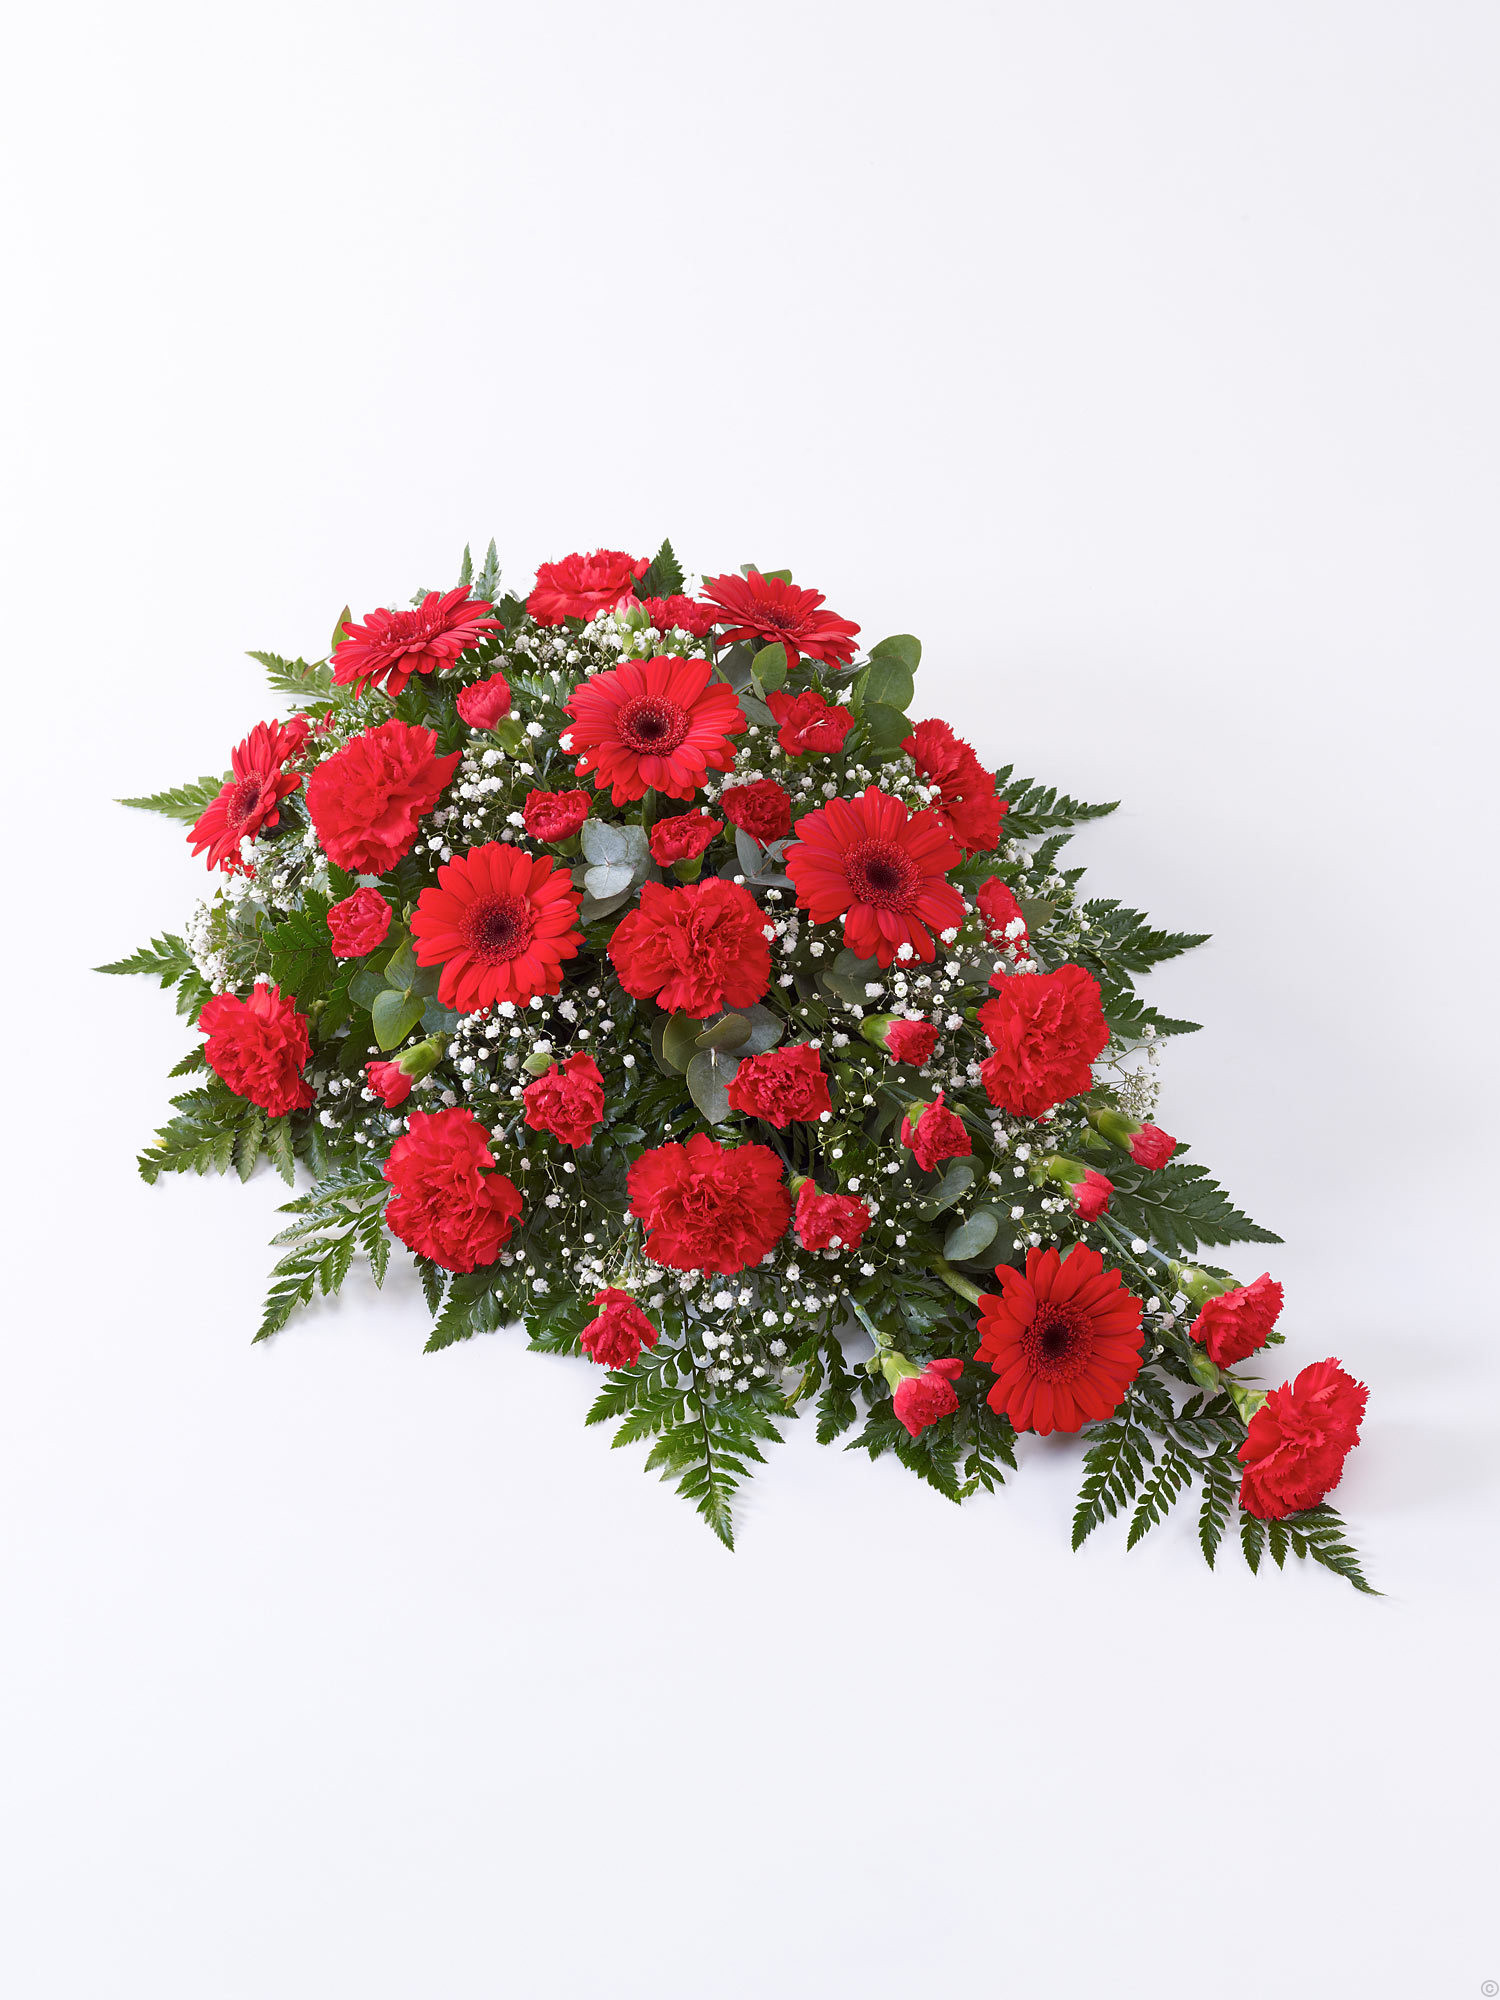 Funeral flowers cork funeral flowers from mimosaflowers carnation and germini teardrop spray red izmirmasajfo Image collections